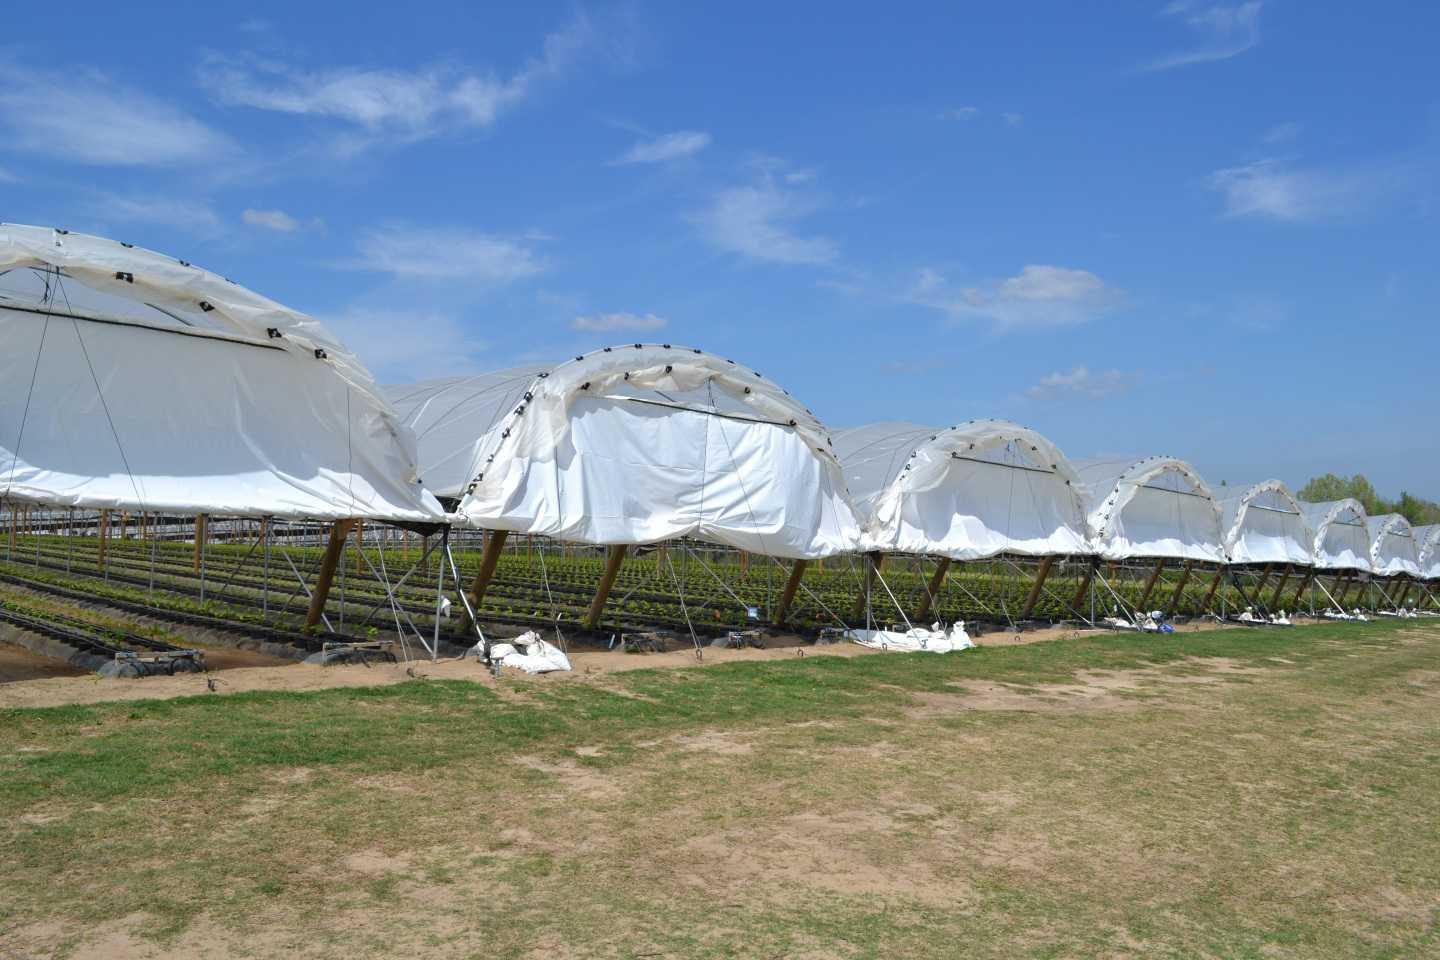 Study: High Tunnels Yield Big Benefits For Florida Blueberry Growers